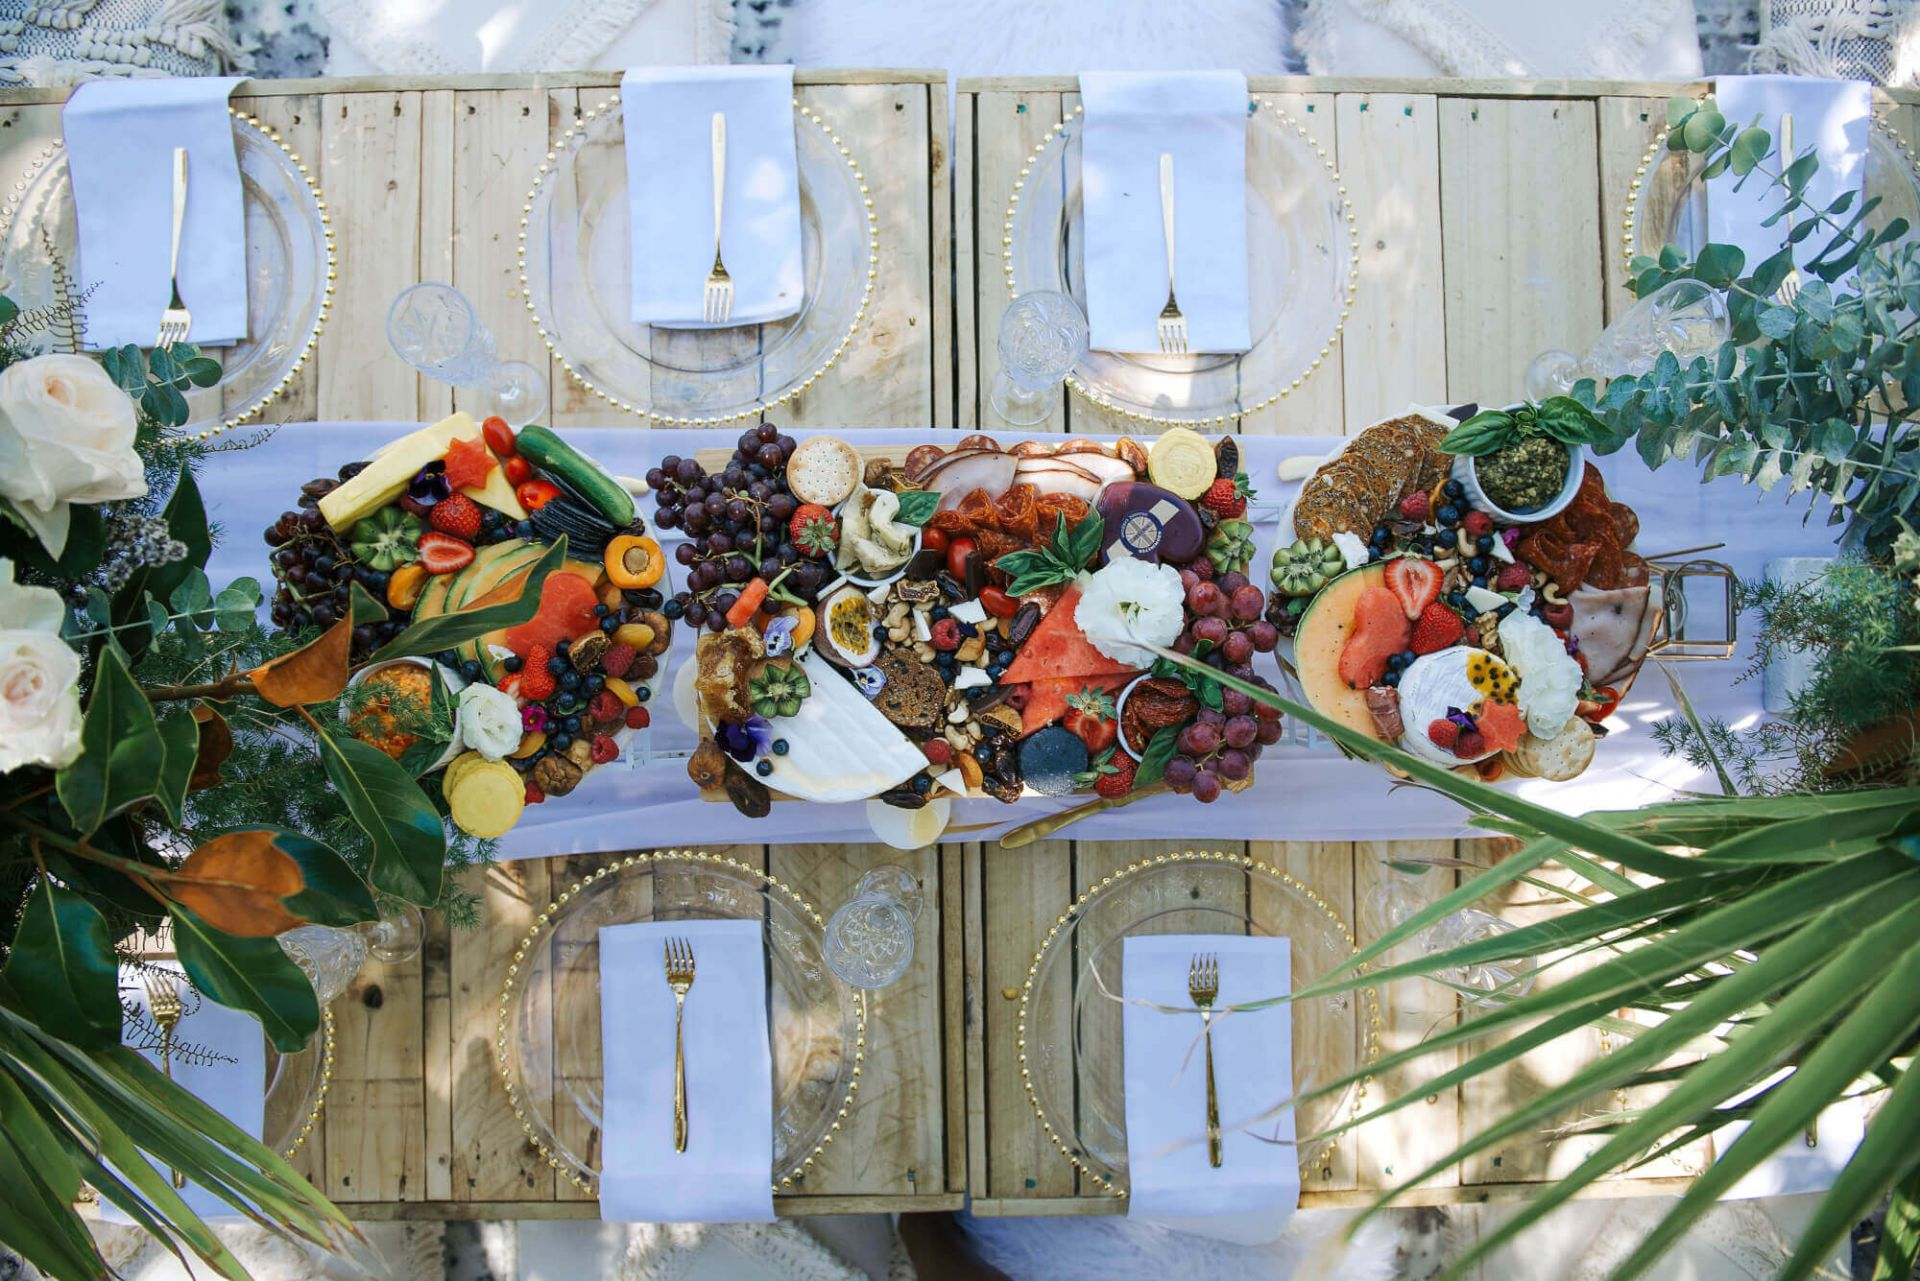 Party Hire / Furniture / Events / Styling/ Grazing Business